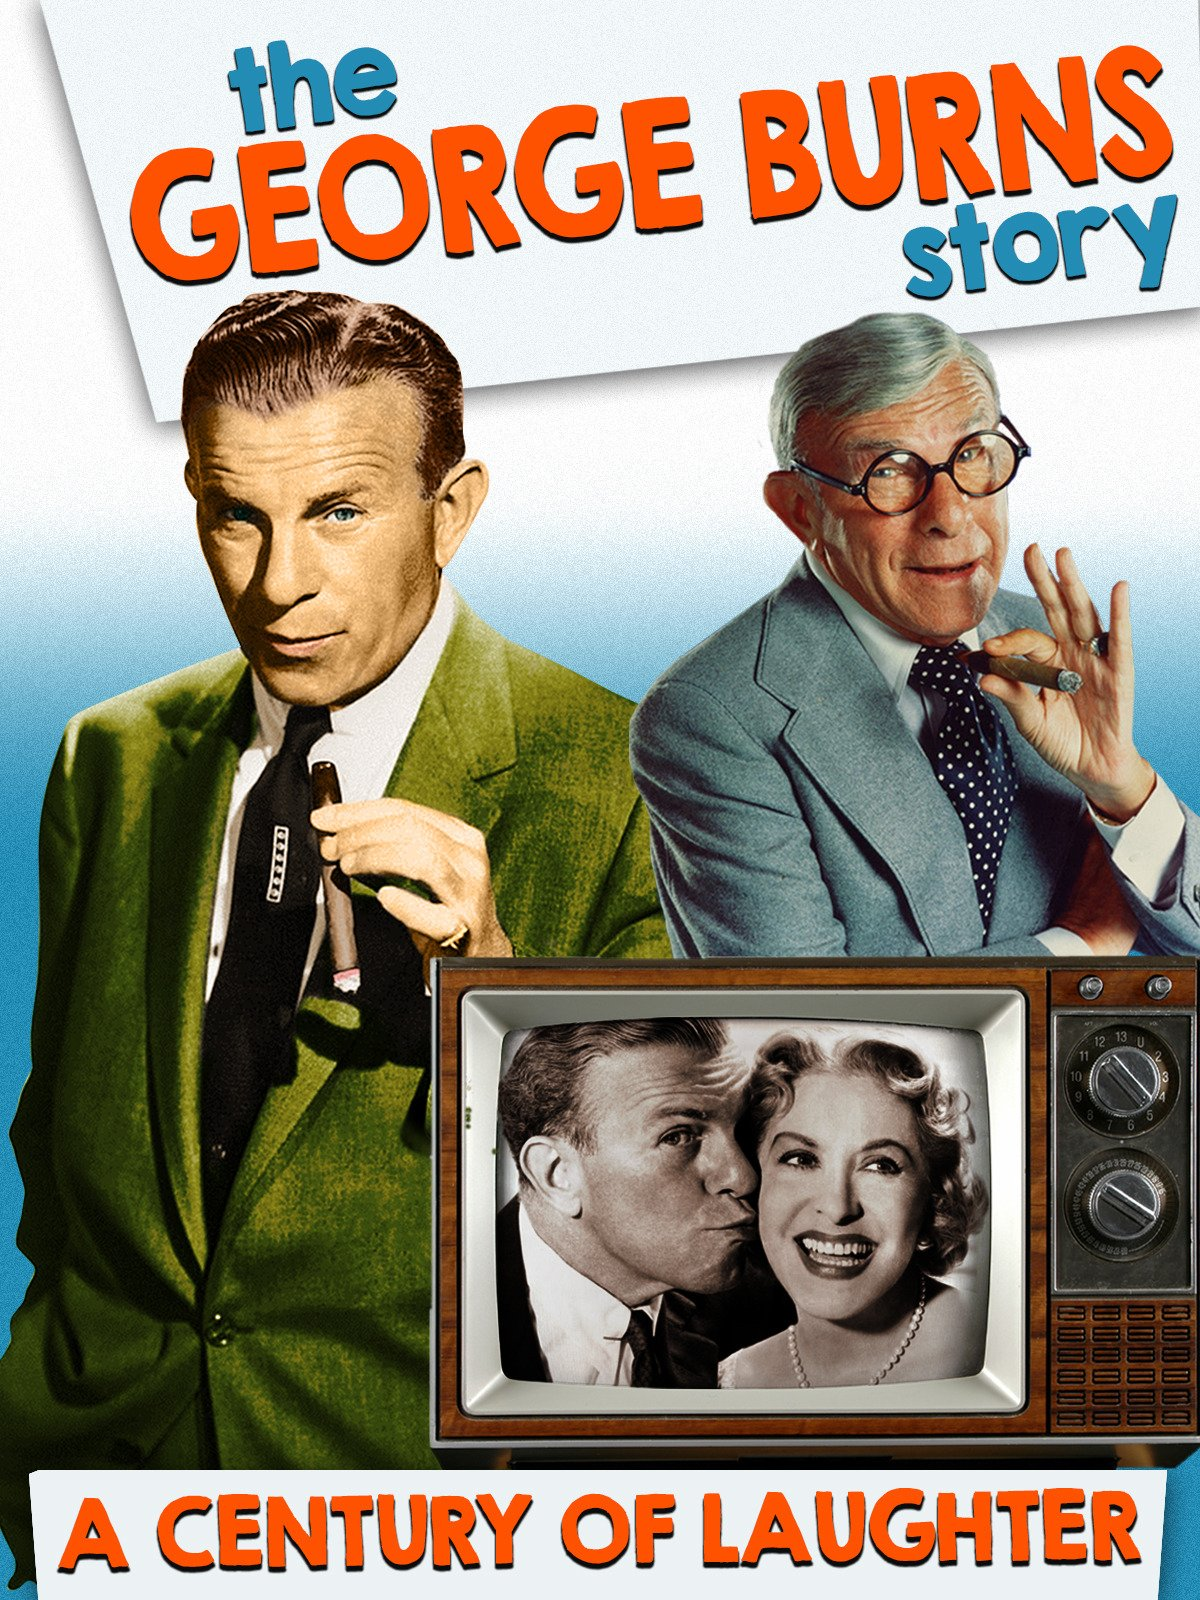 The George Burns Story, A Century of Laughter